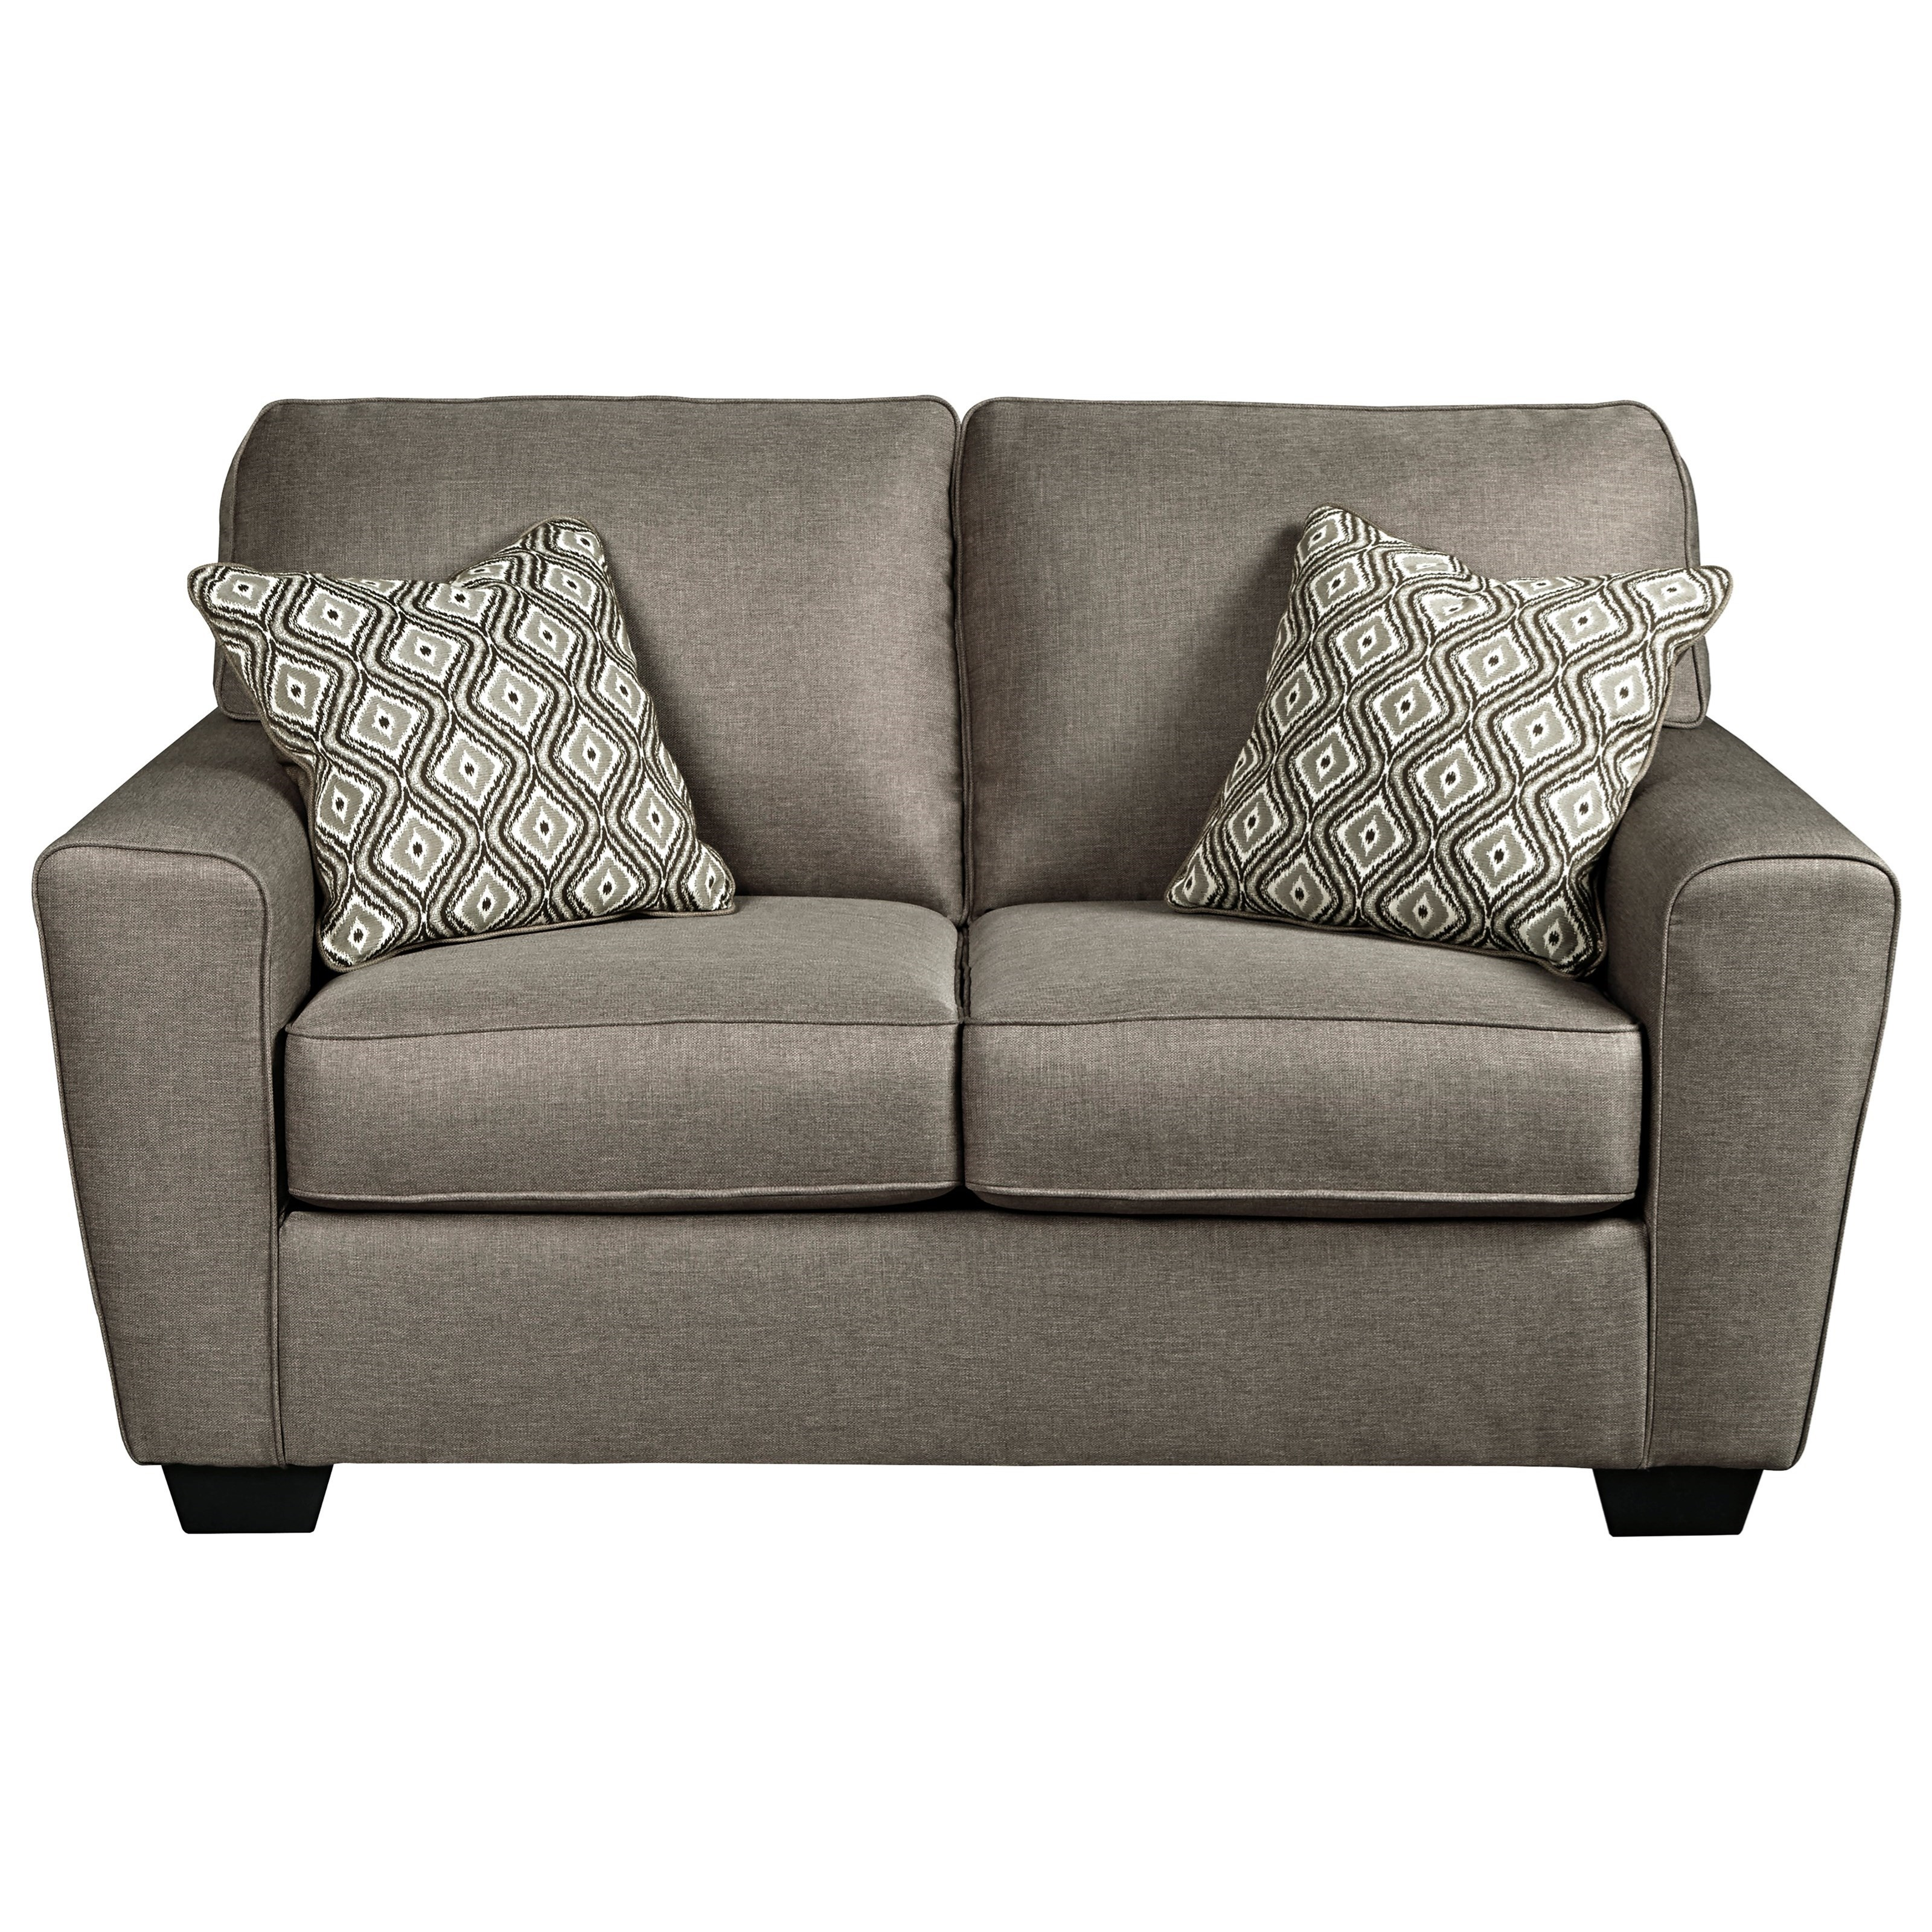 Calicho Loveseat by Benchcraft at Walker's Furniture